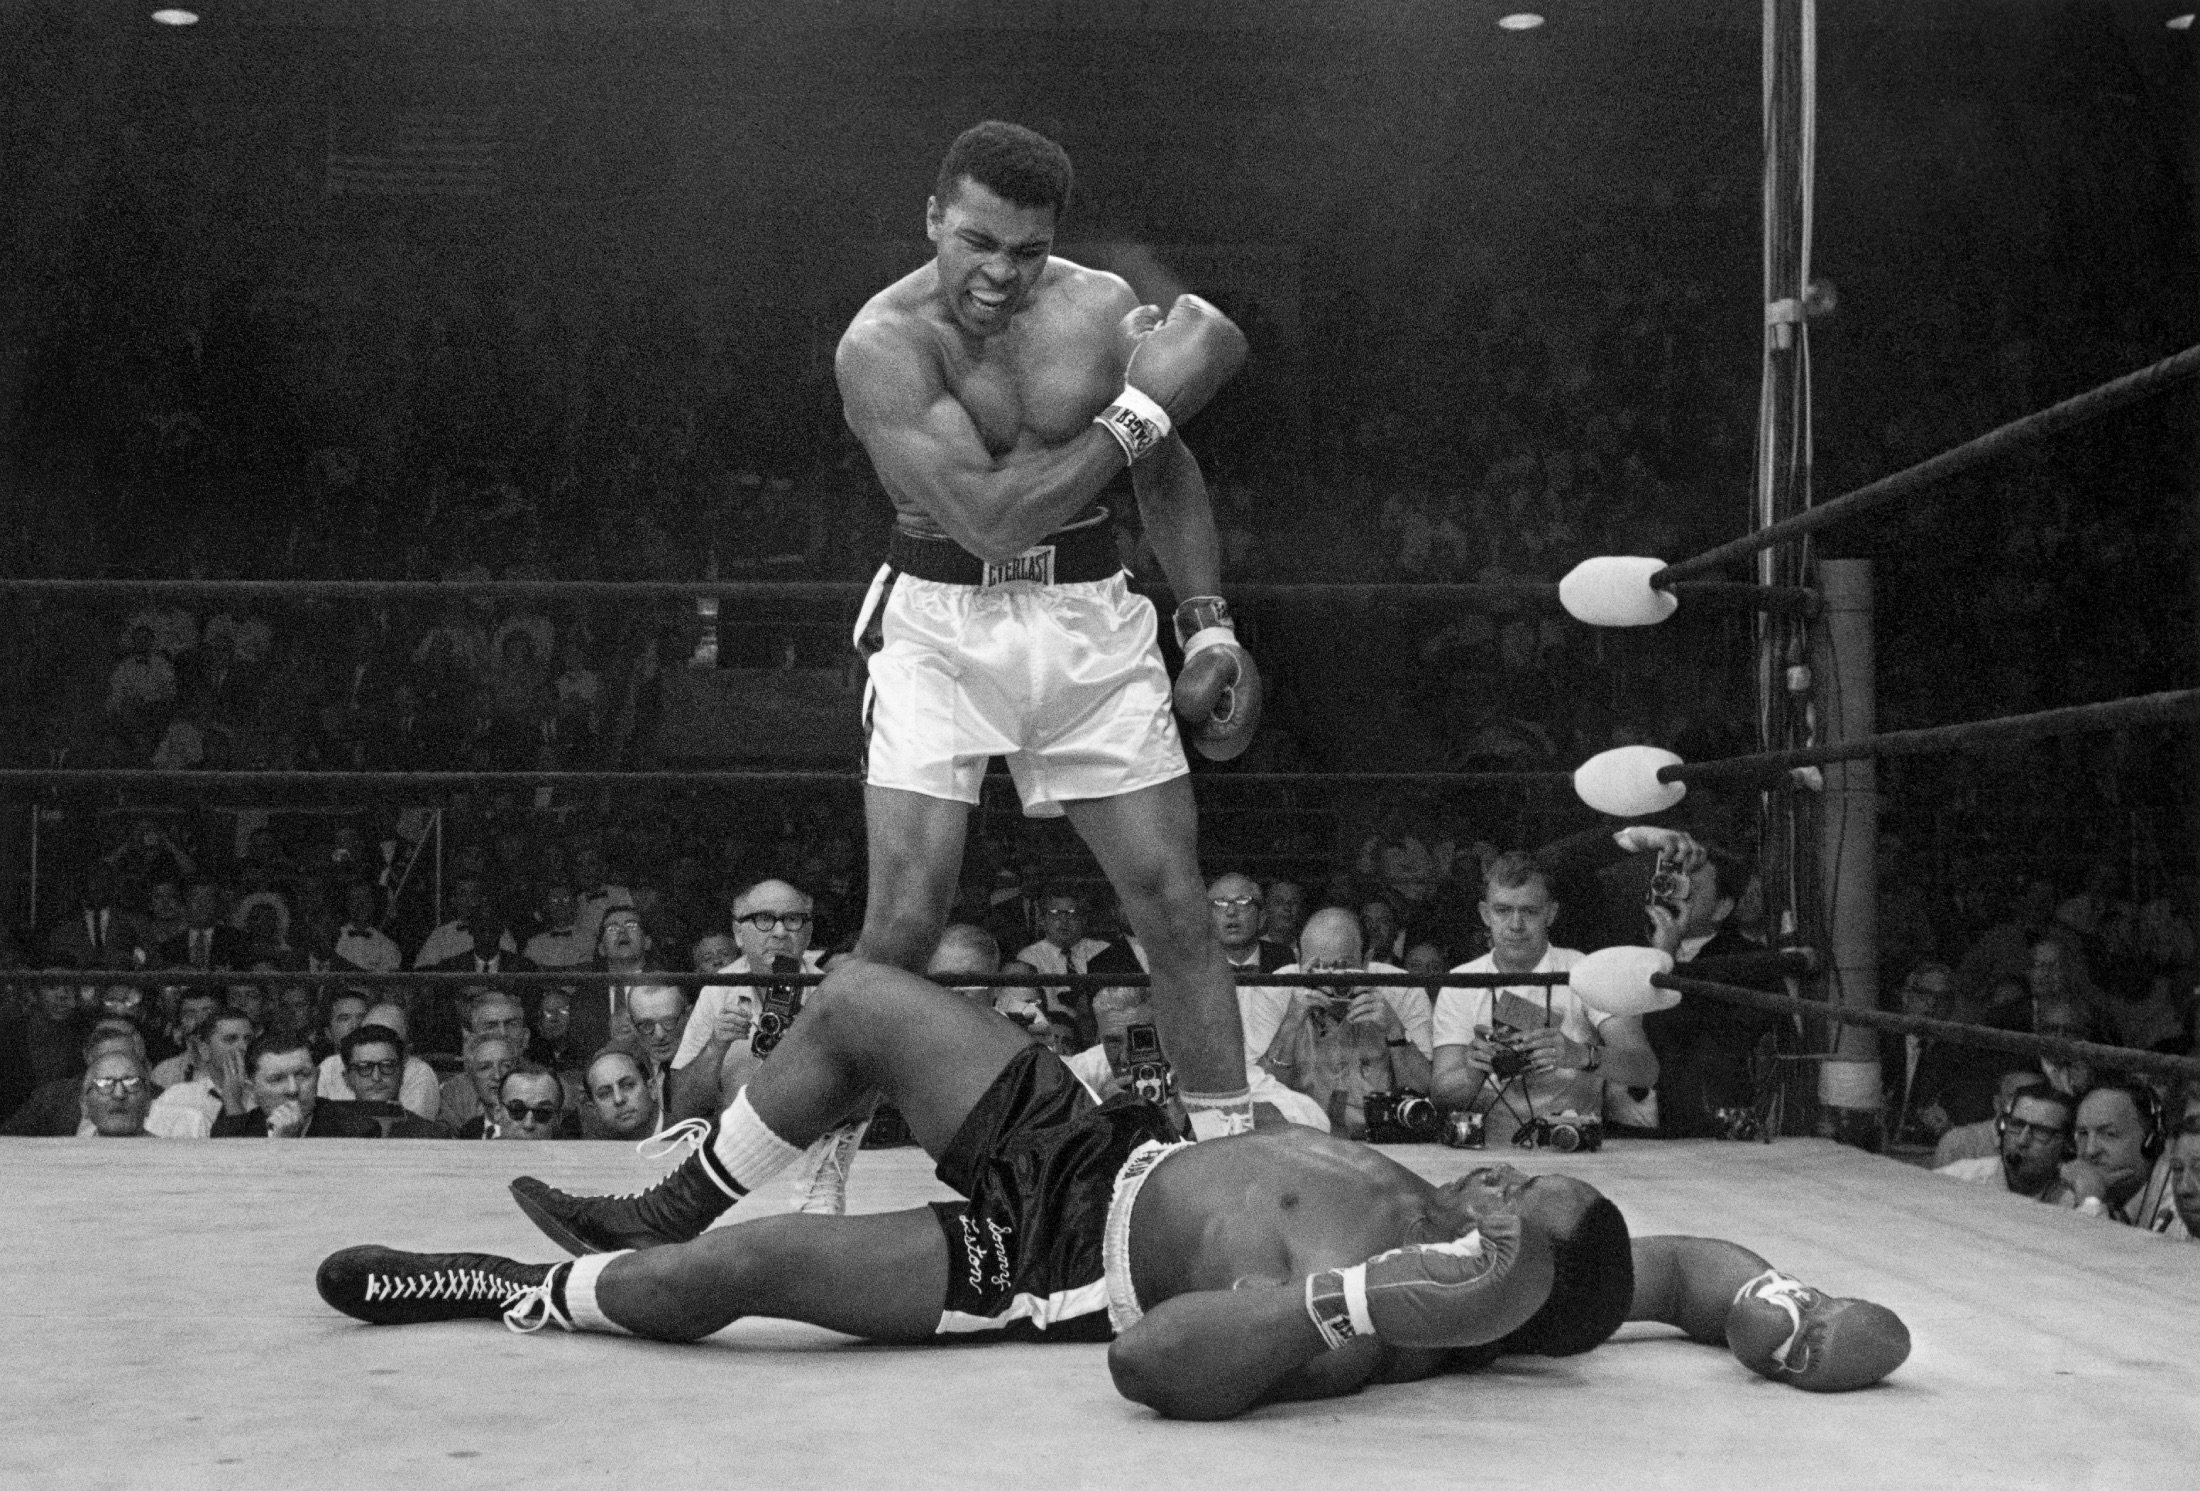 Heavyweight champion Muhammad Ali stands over fallen challenger Sonny Liston, shouting and gesturing shortly after dropping Liston with a short hard right to the jaw, Lewiston, Maine, U.S., May 25, 1965. (AP Photo)